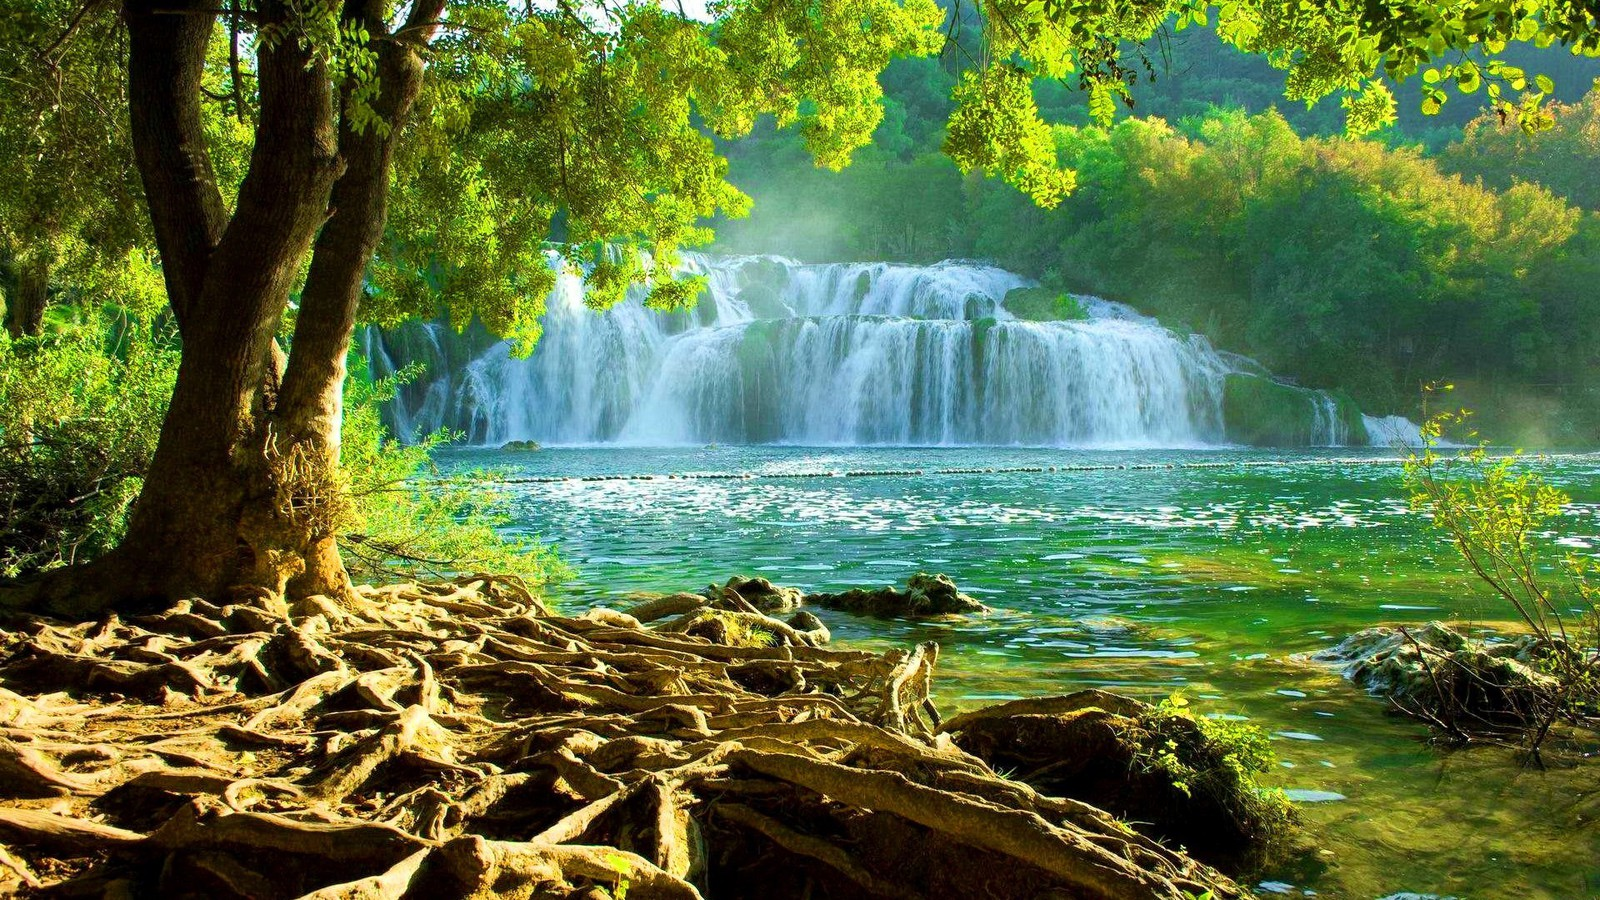 National park krka wallpaper 6050 pc en - Top hd wallpapers for laptop ...